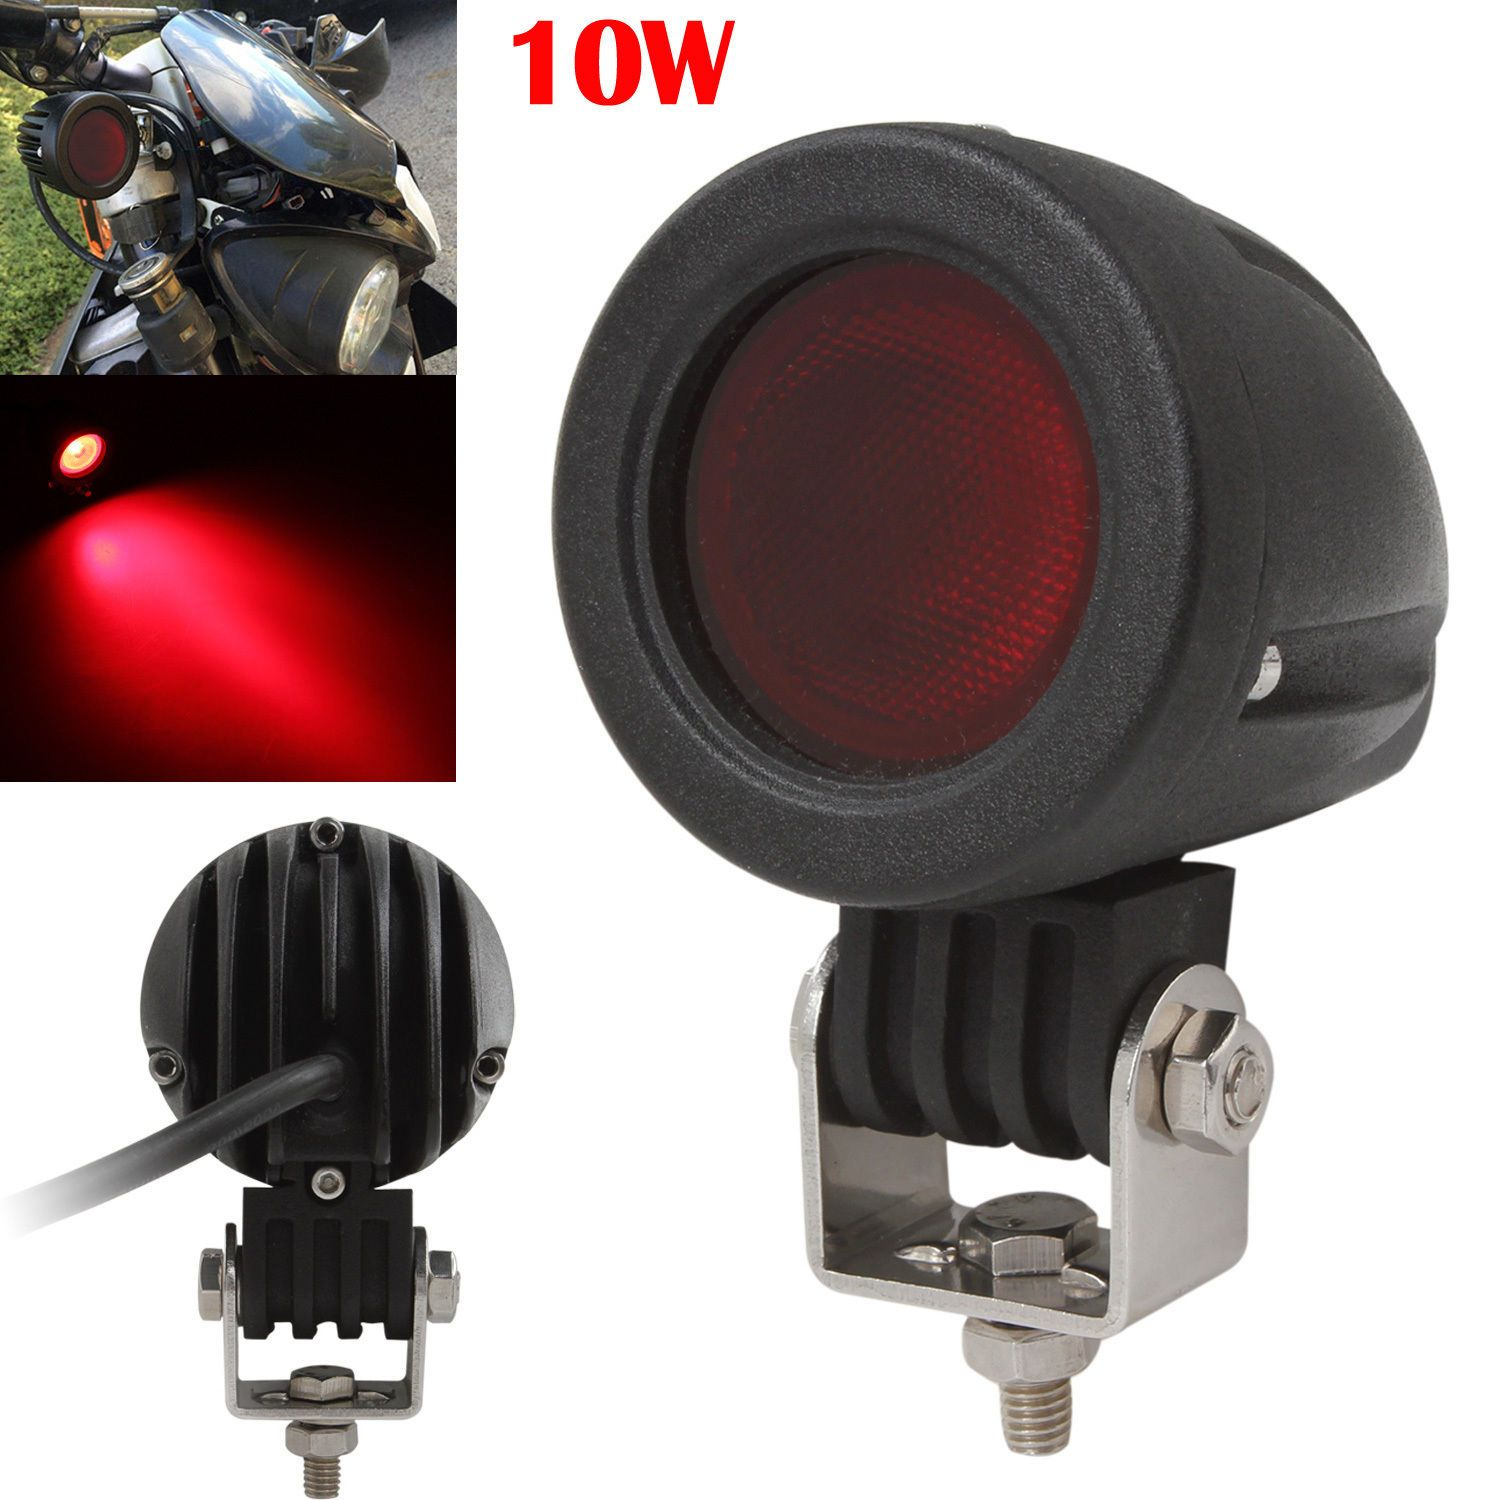 Waterproof 10W 12V/24V 1000LM Red CREE LED Work Light Car Offraod Fog Headlamp